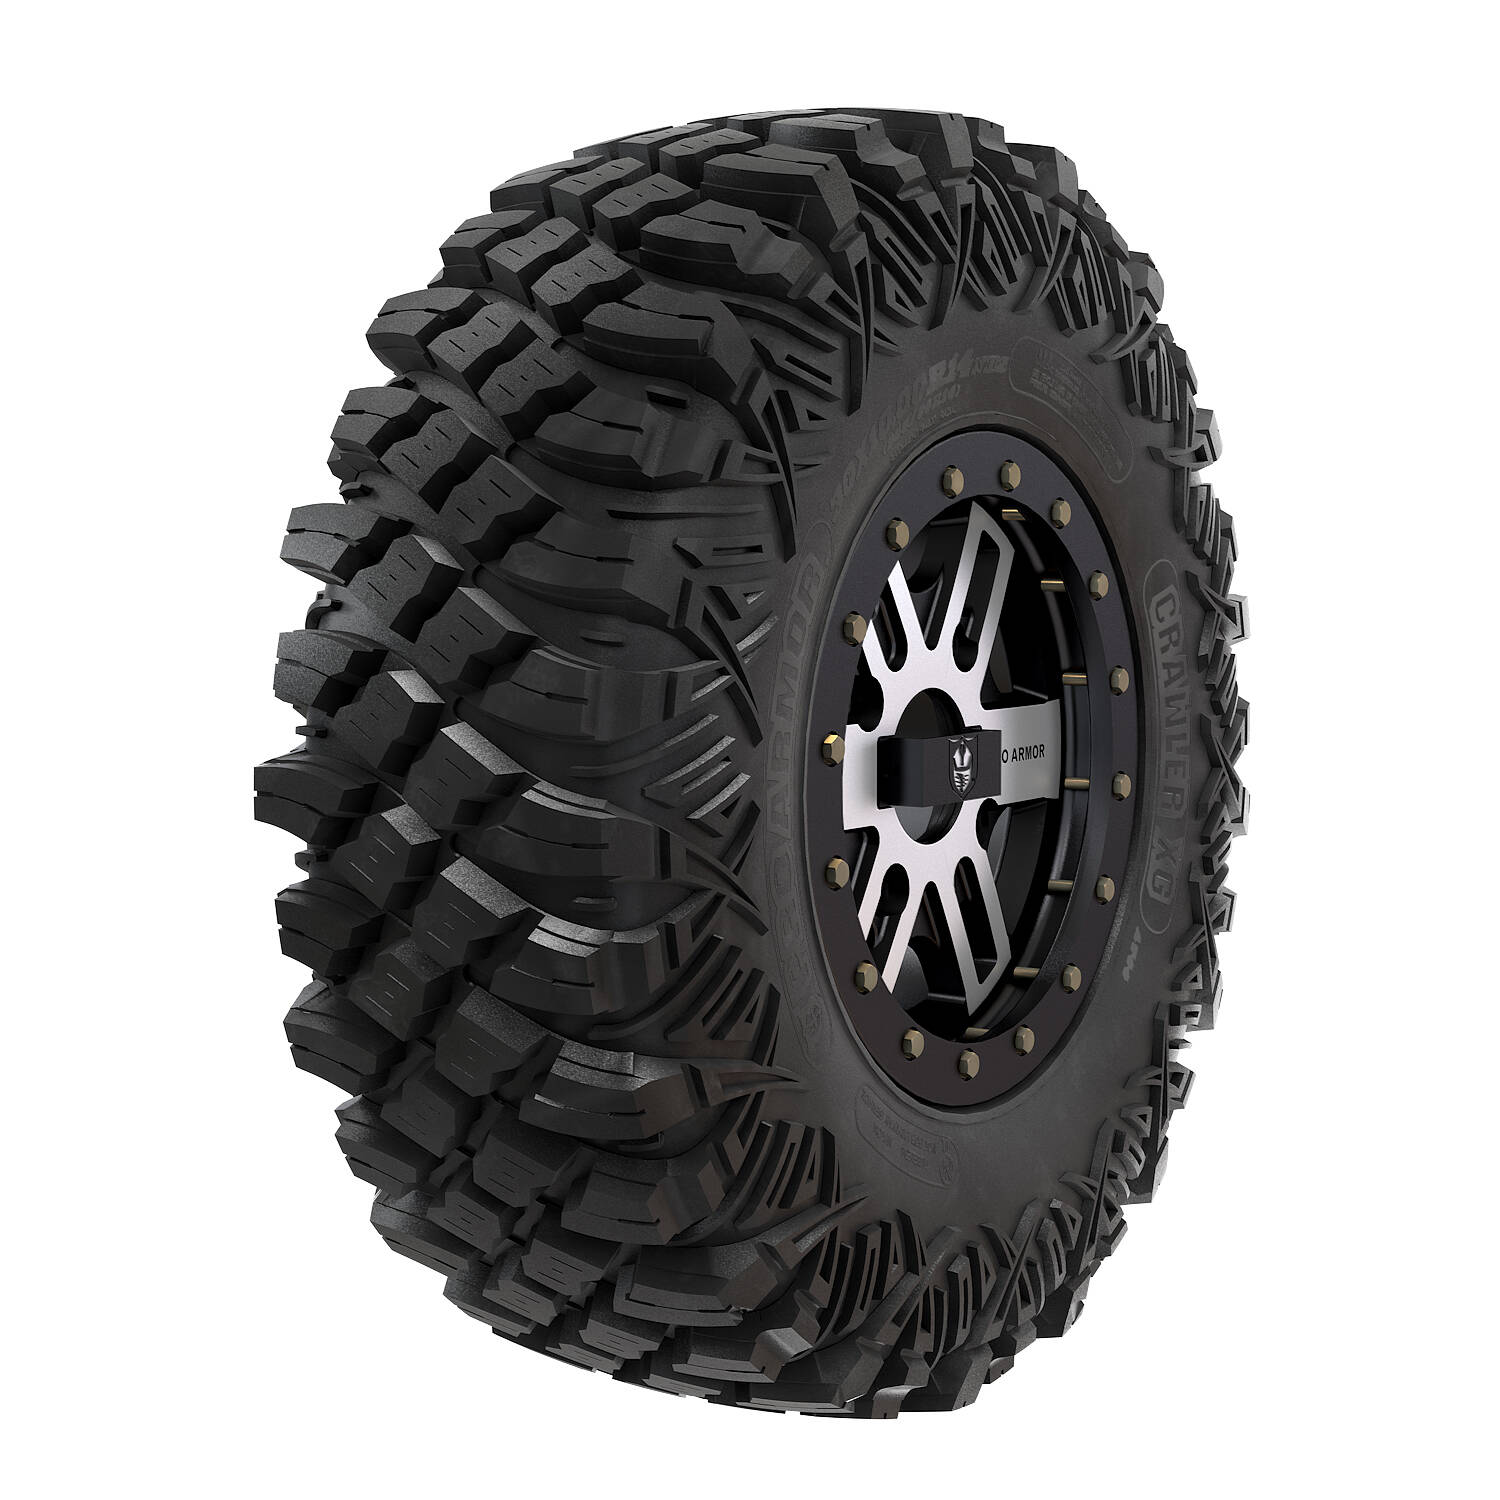 Pro Armor® Wheel & Tire Set: Combat - Accent & Crawler XG - 30""